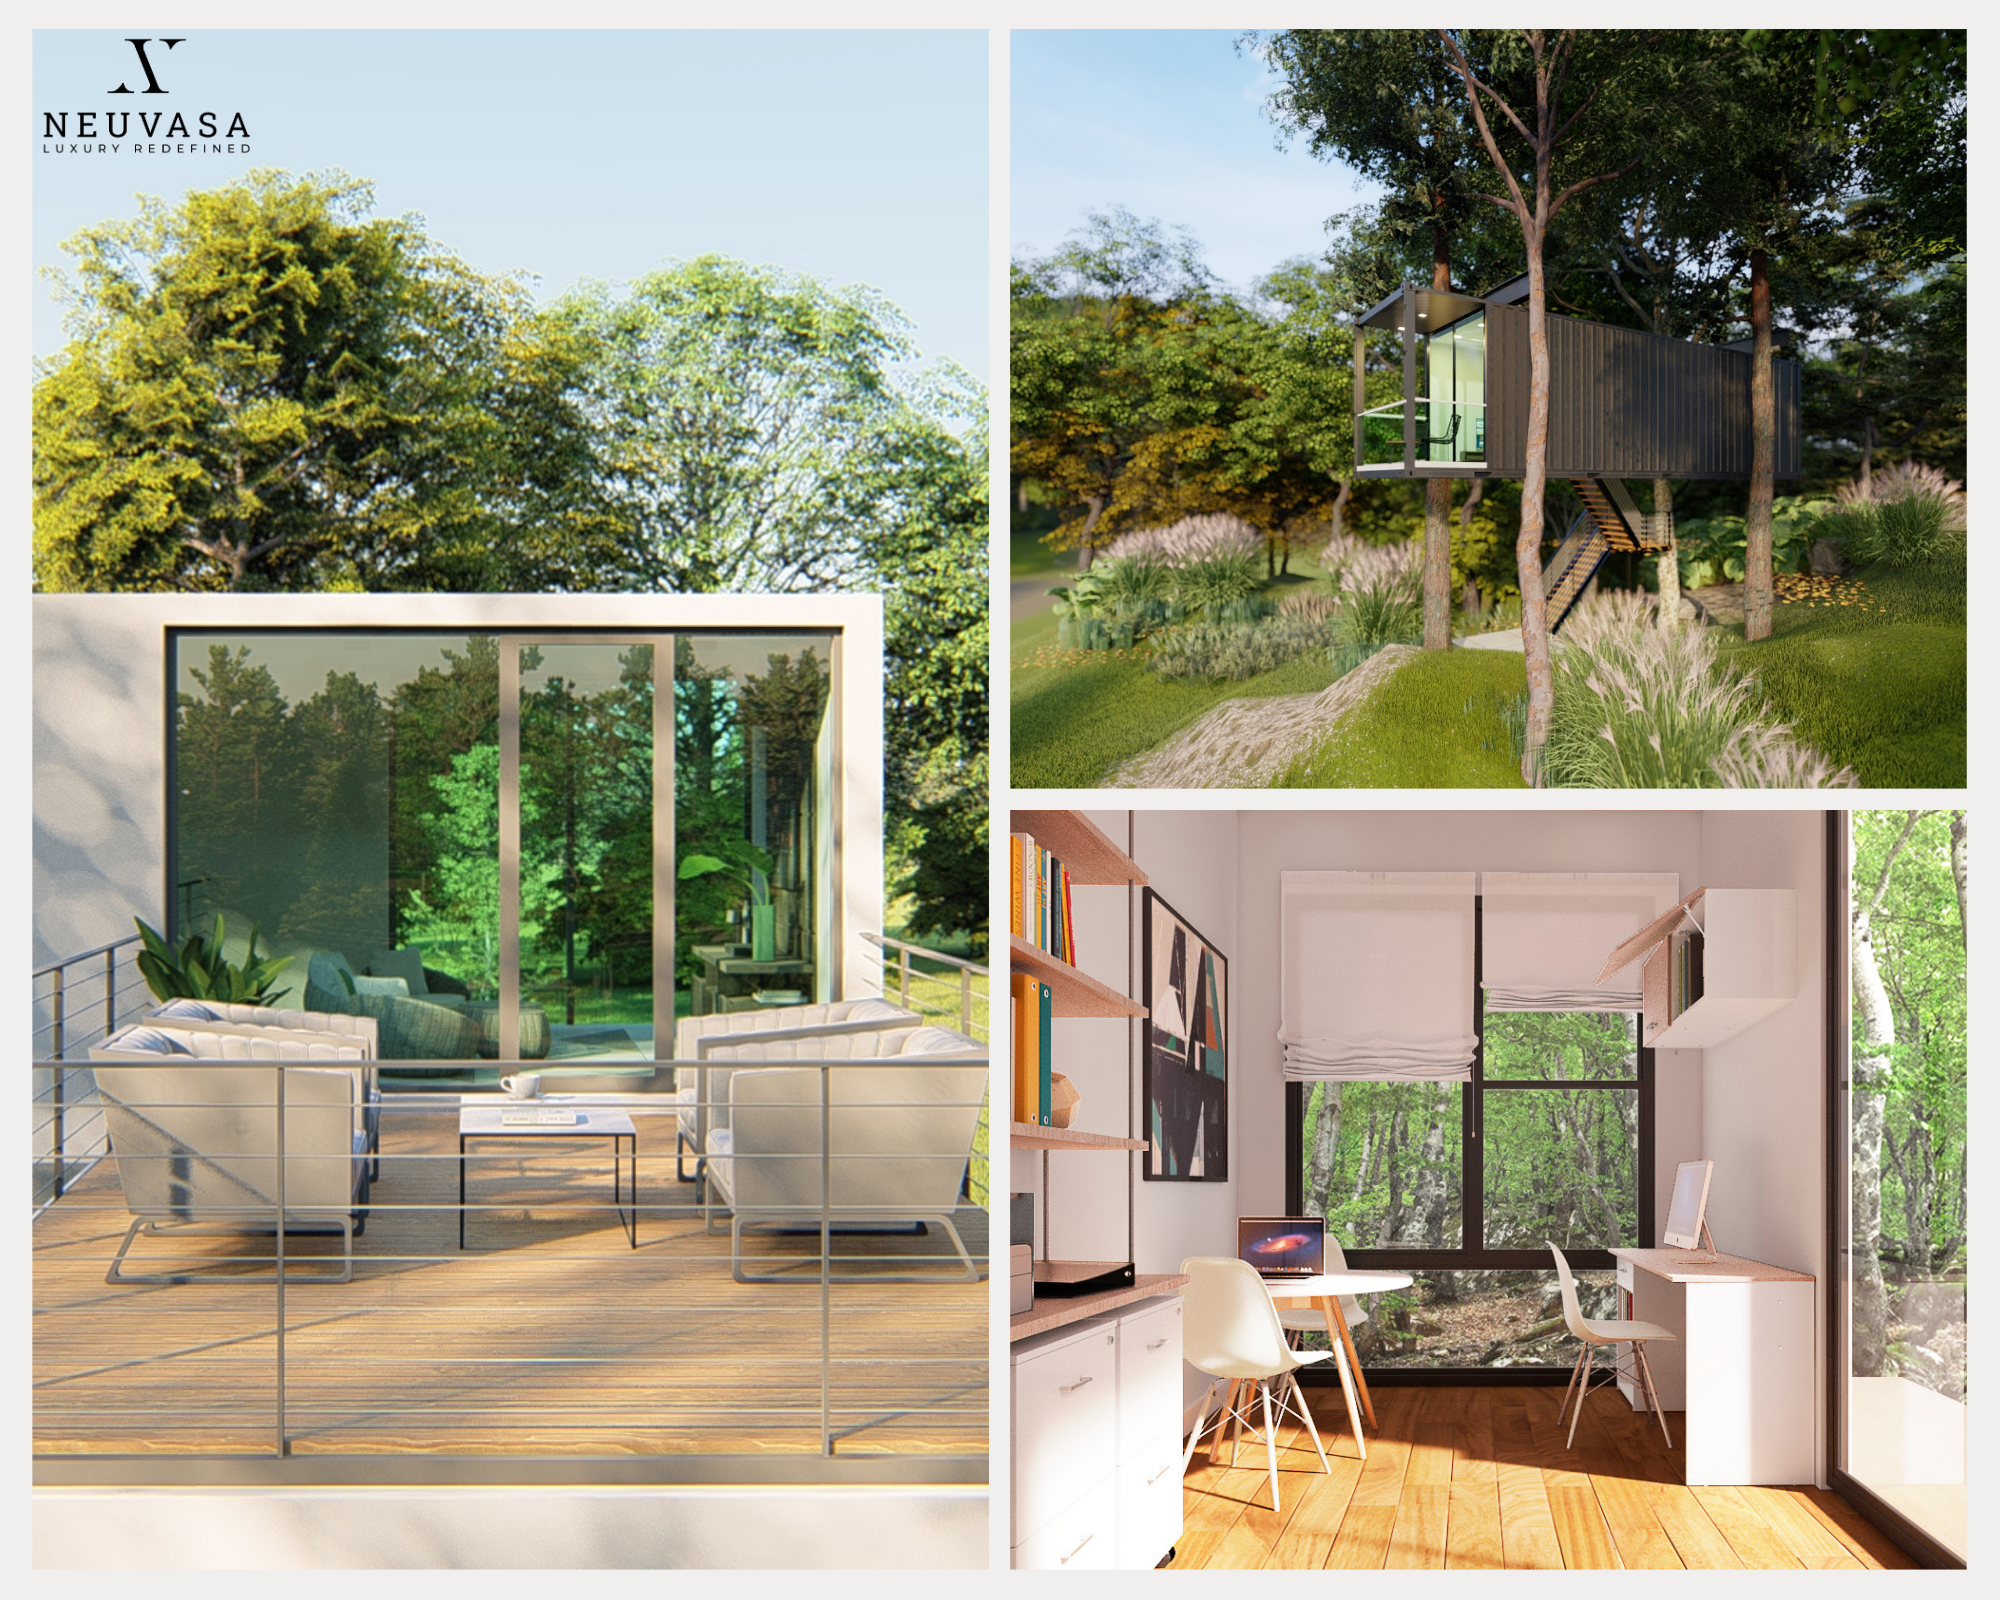 sustainable living through neuvasa container home